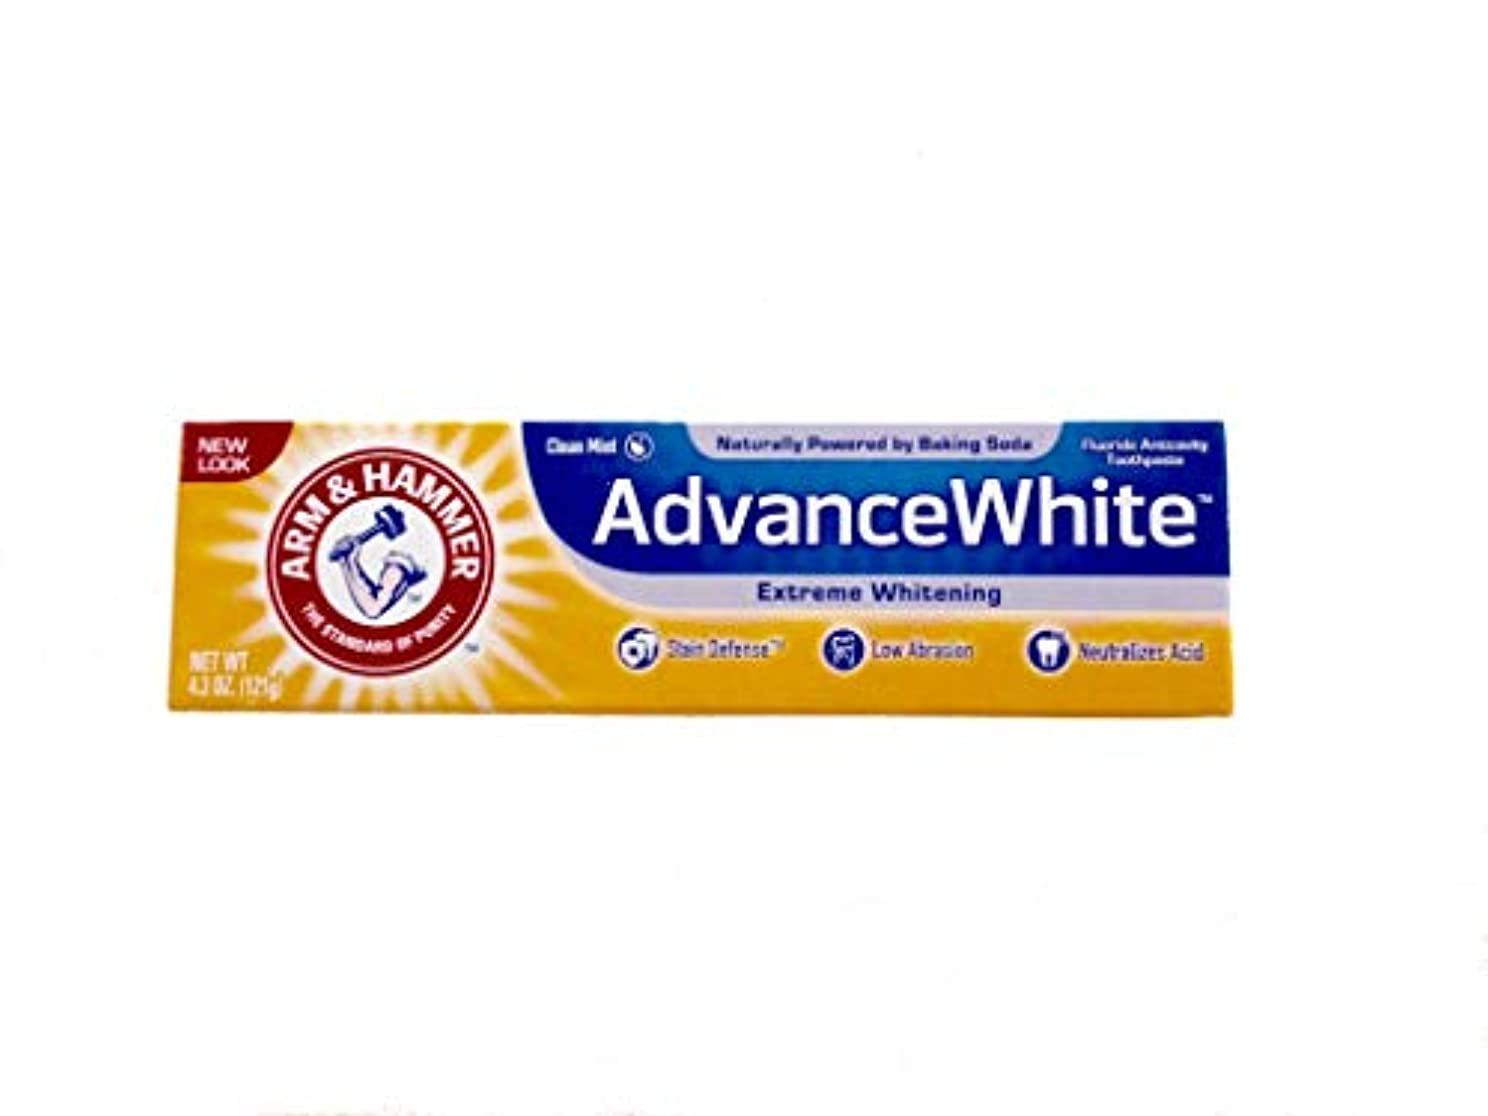 Arm & Hammer Advance White Fluoride Anti-Cavity Toothpaste with Baking Soda & Peroxide - 4.3 oz by Arm & Hammer...